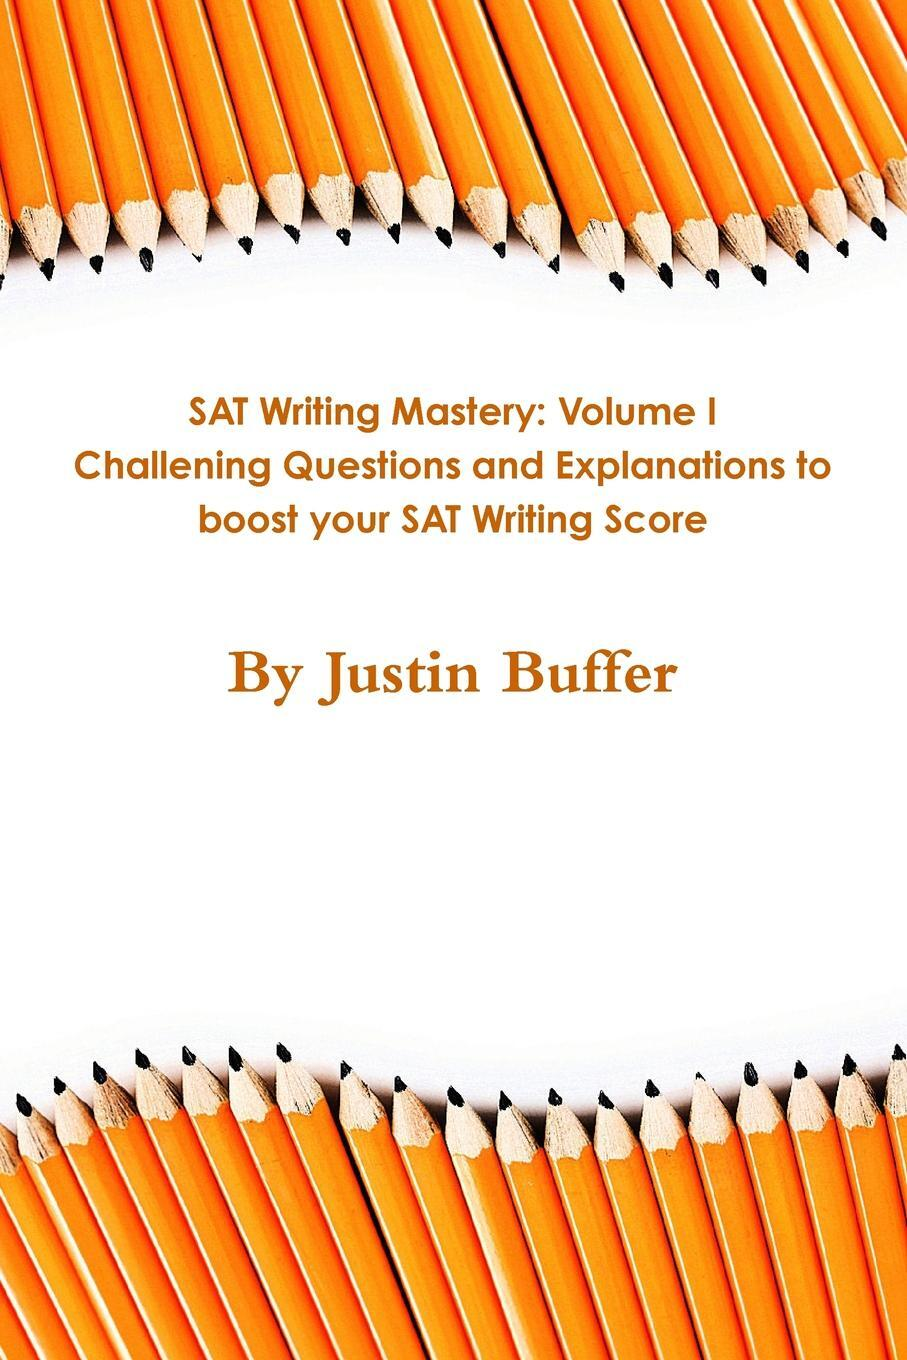 SAT Writing Section Mastery Volume I. Challenging Questions with Explanations to Help You Boost Your Score